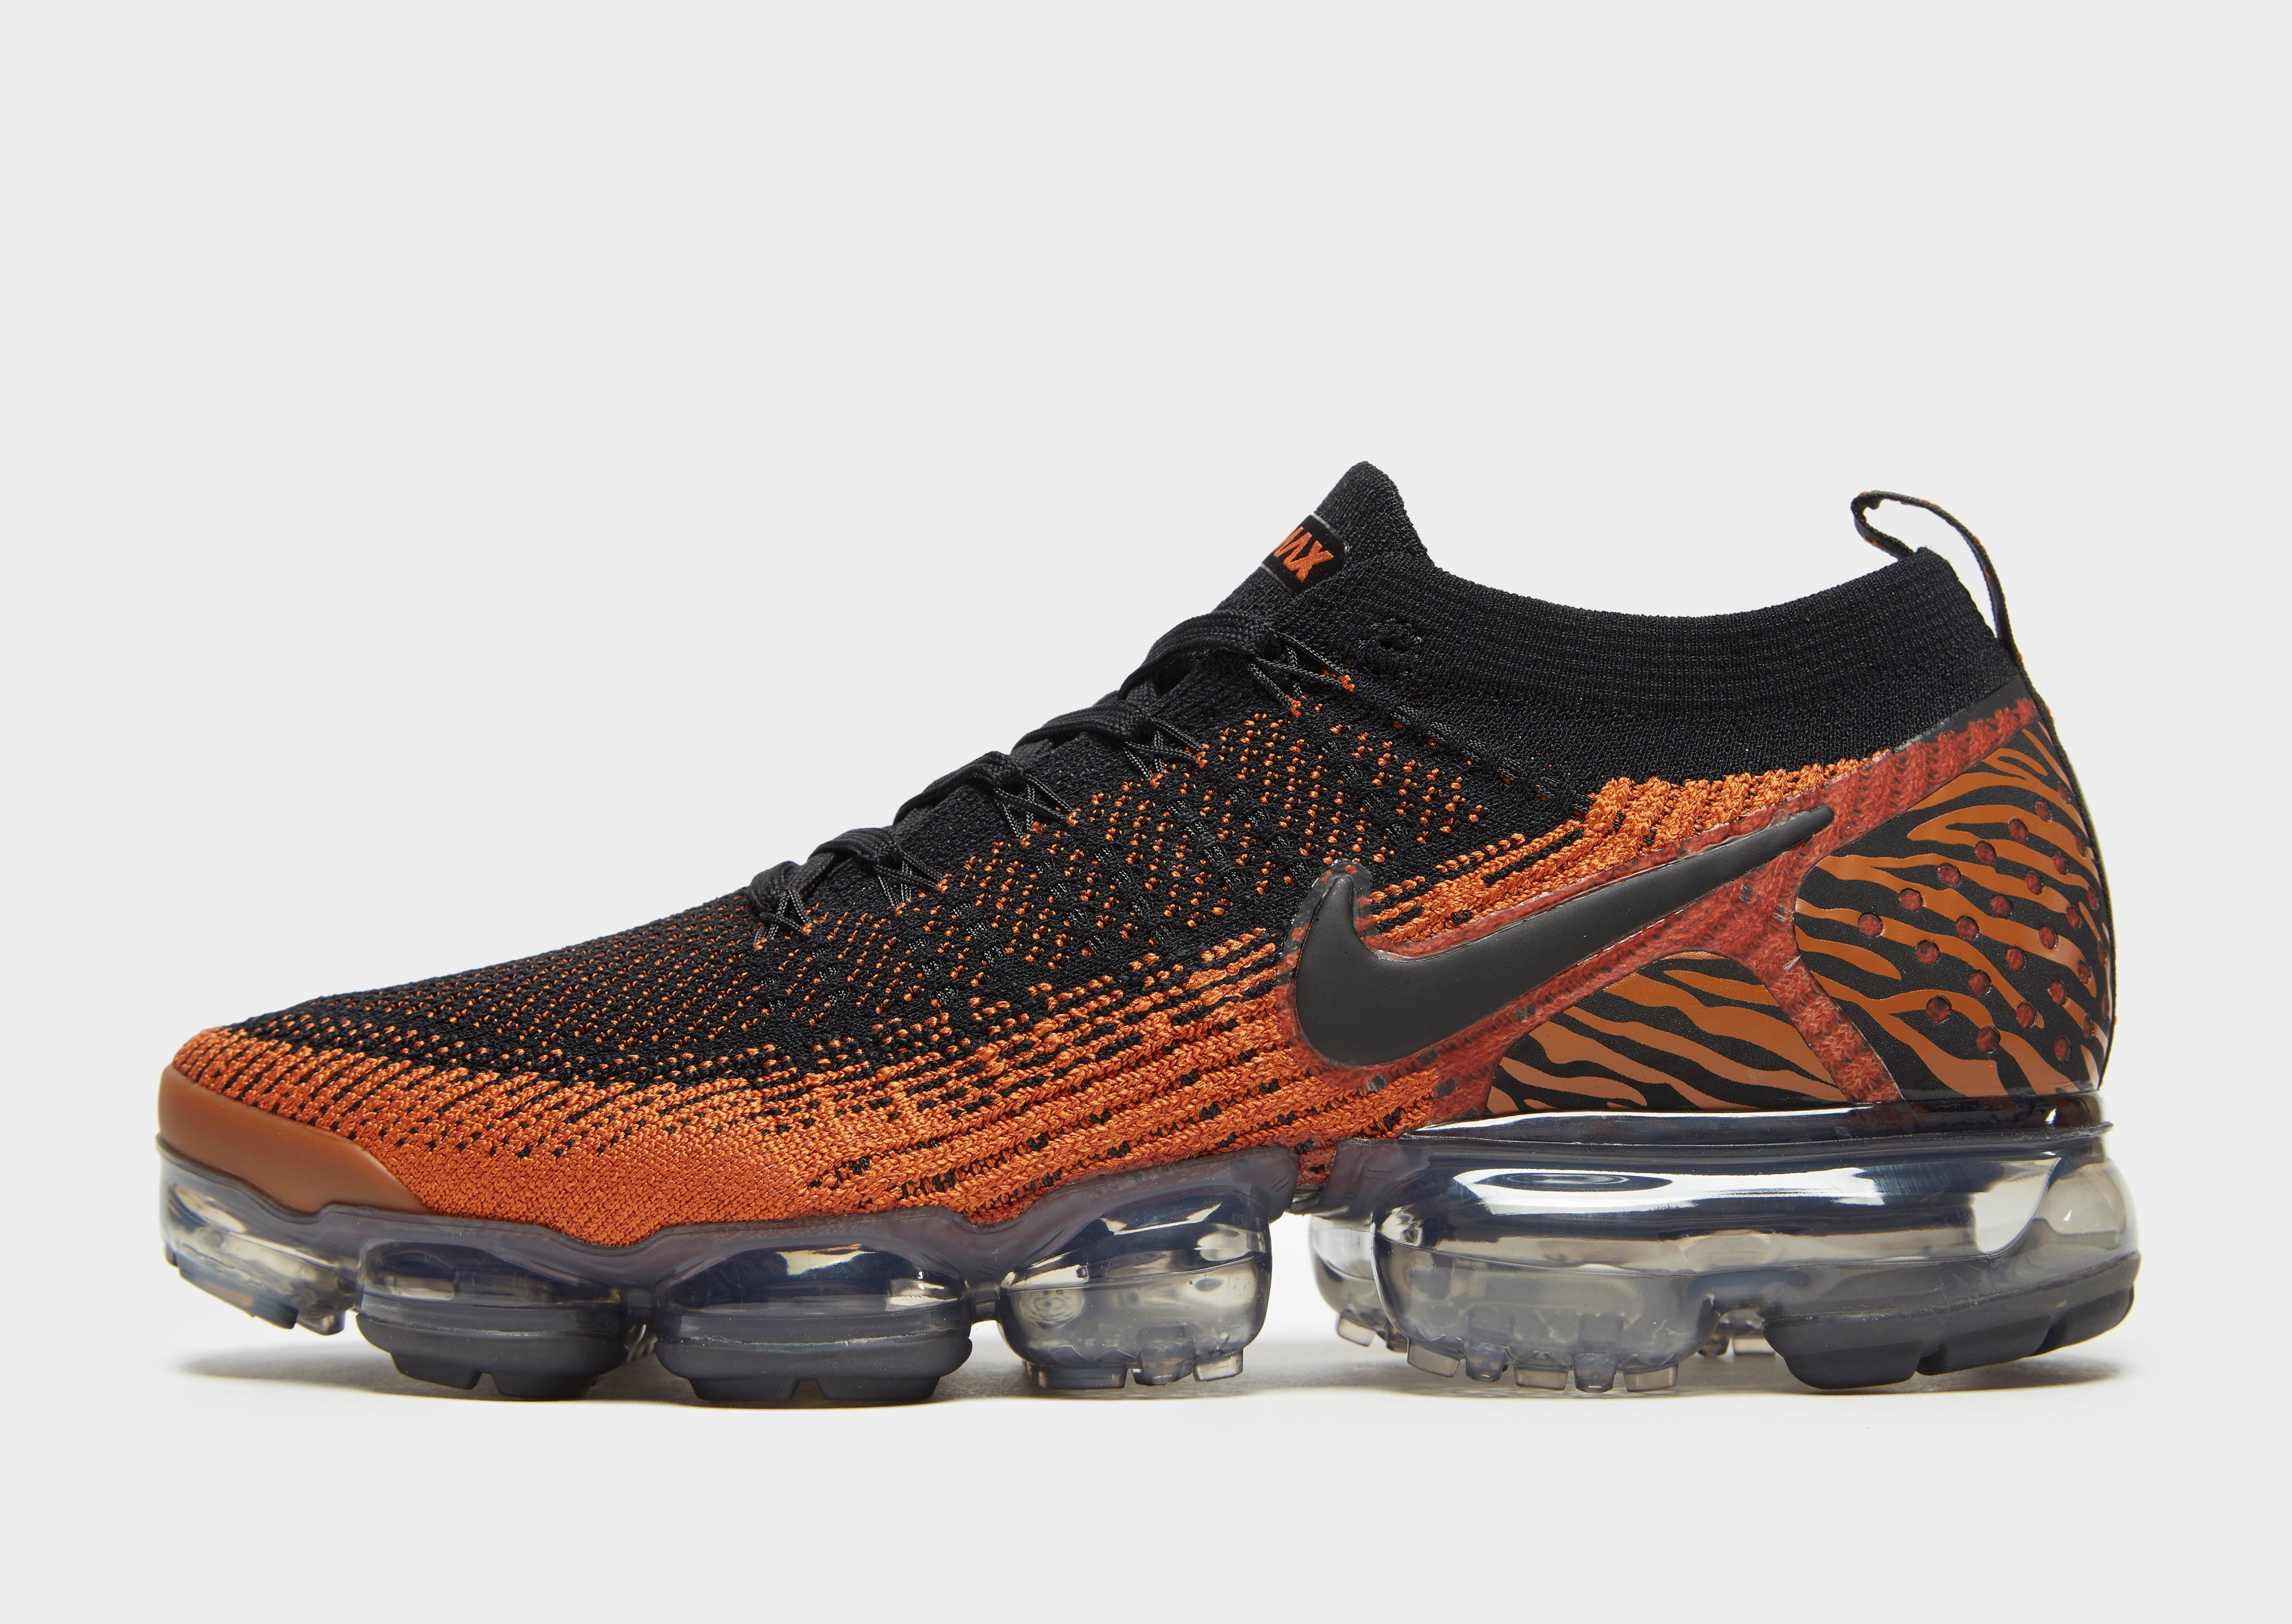 nike vapour max 2